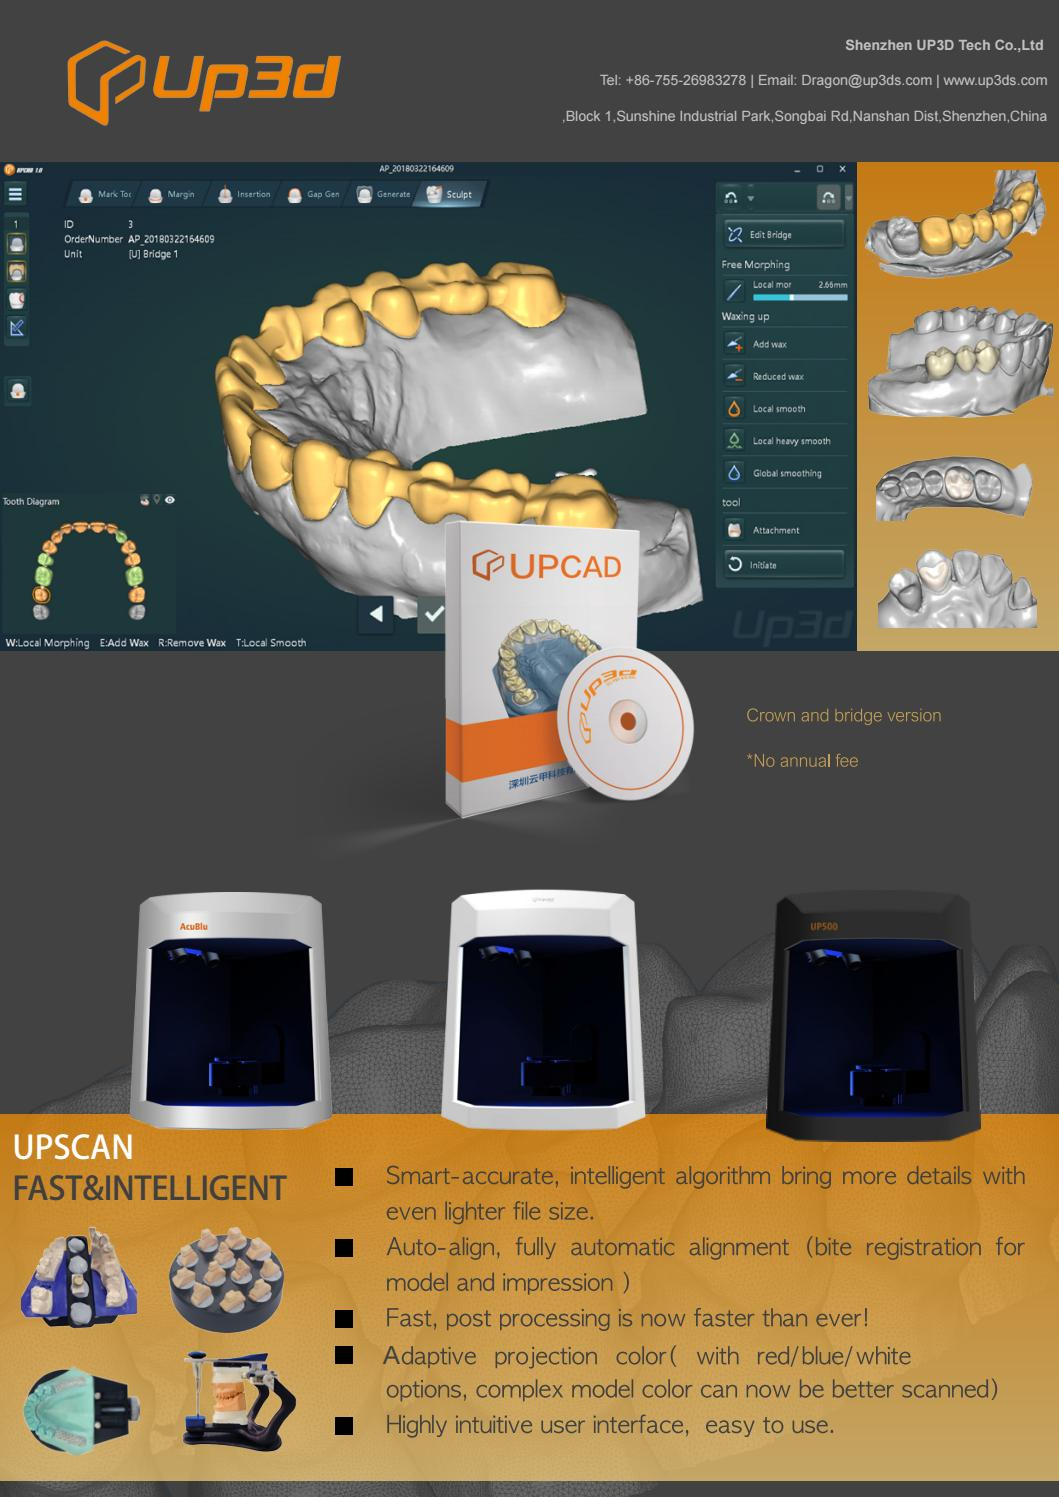 3d dental impression and model scanner brochure by Yun Jia